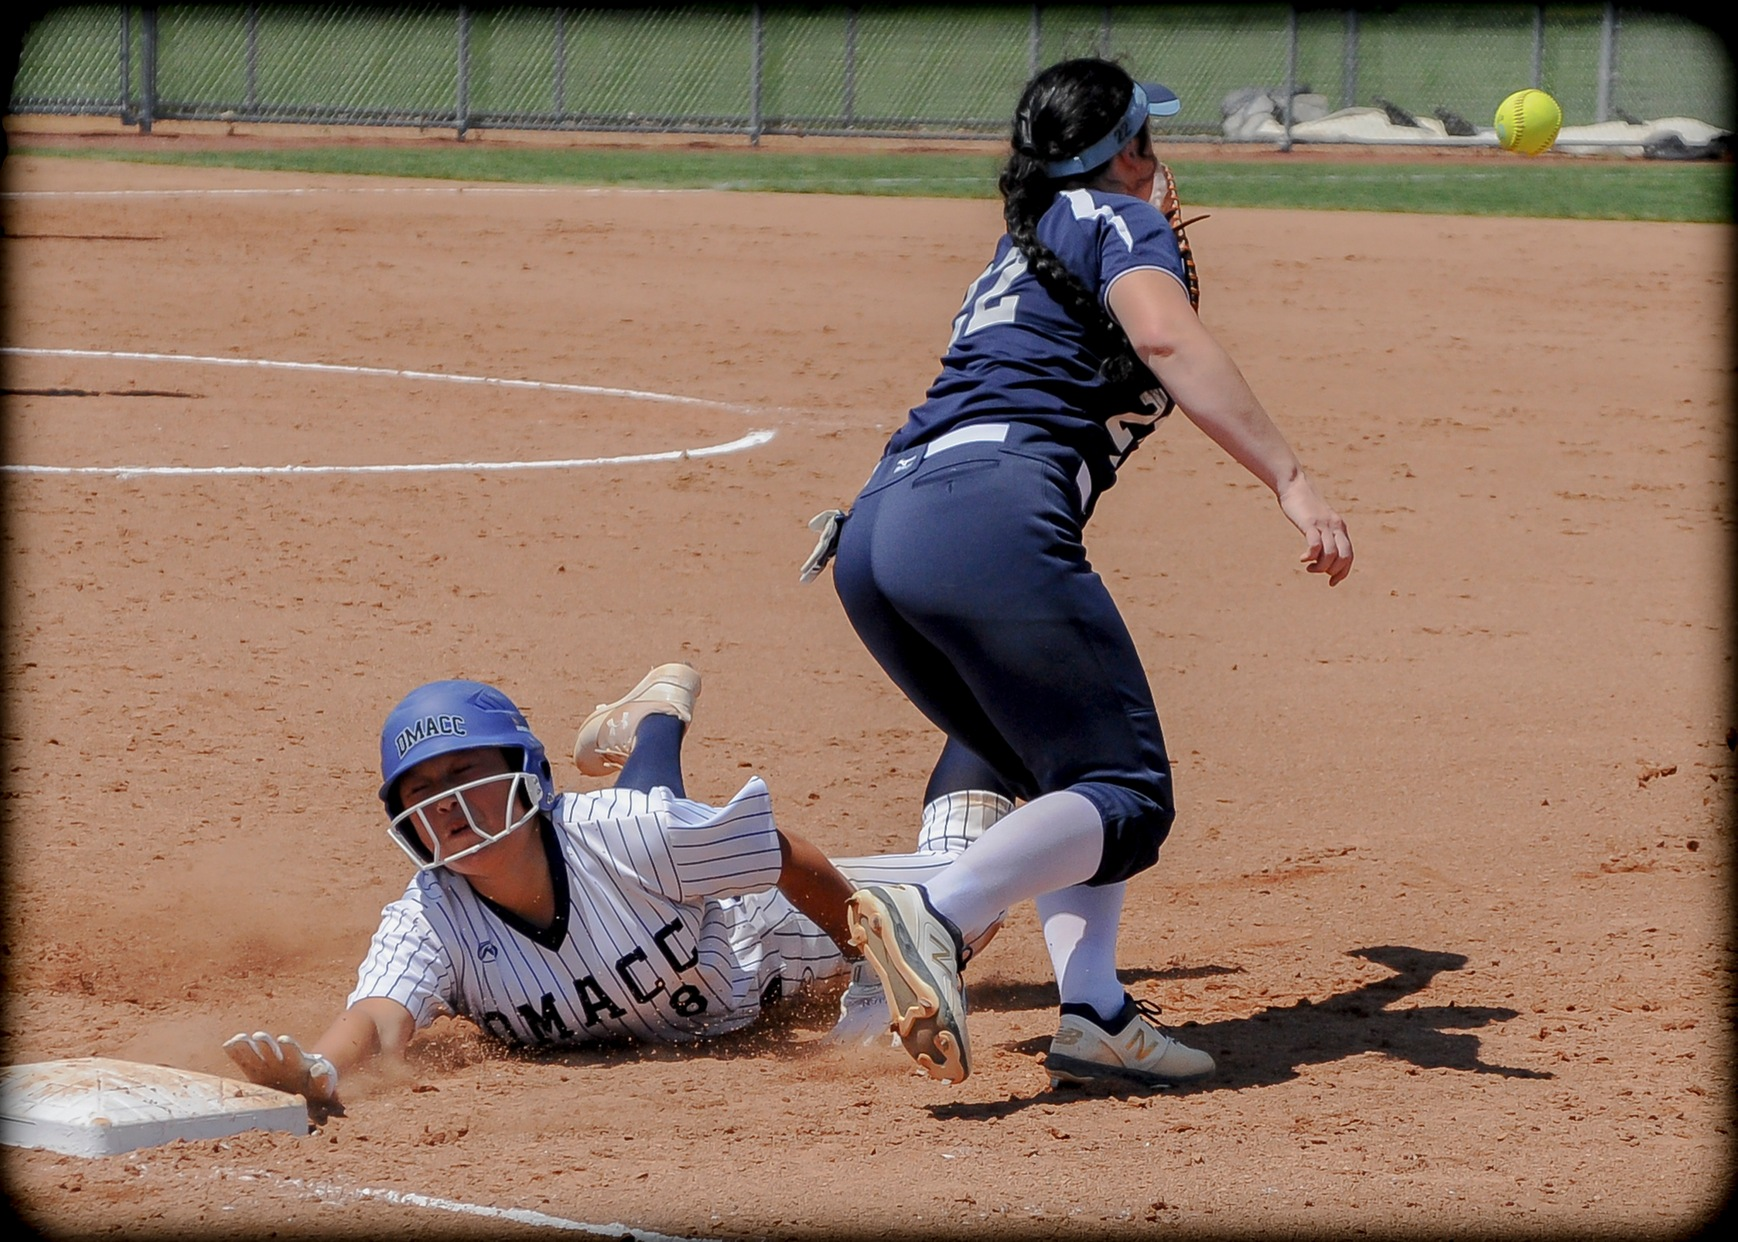 Swafford pitches, bats DMACC softball team to tournament-opening victory